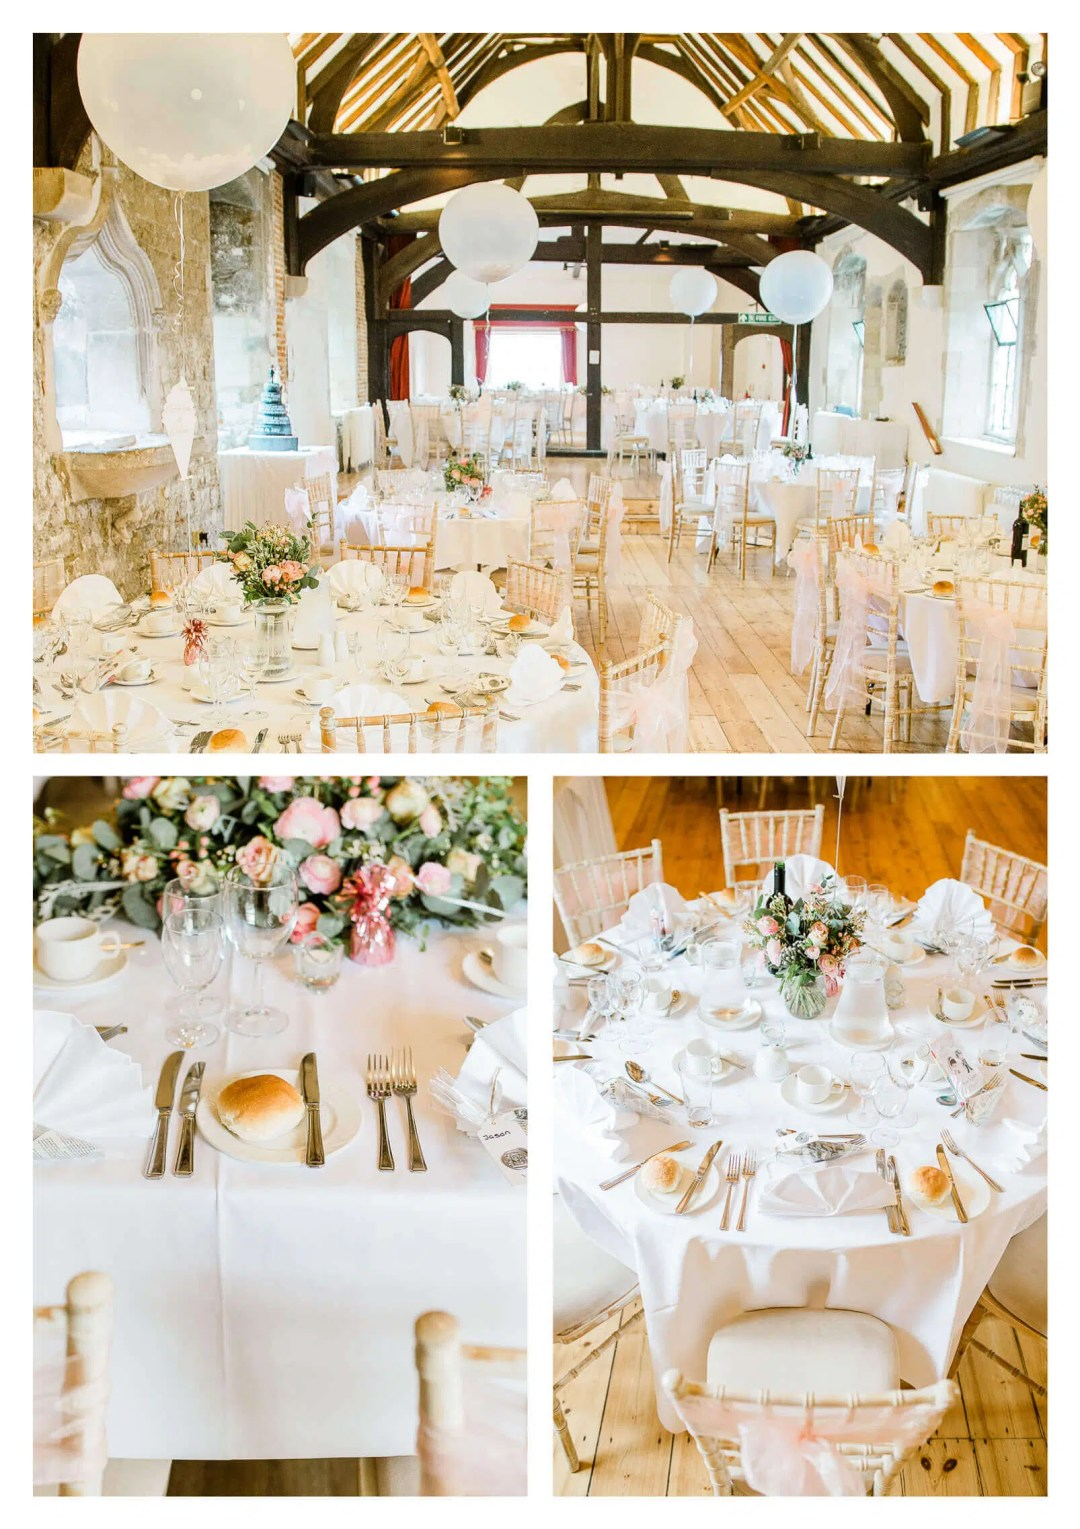 Chichester Cathedral venue wedding breakfast decor | West Sussex photographer